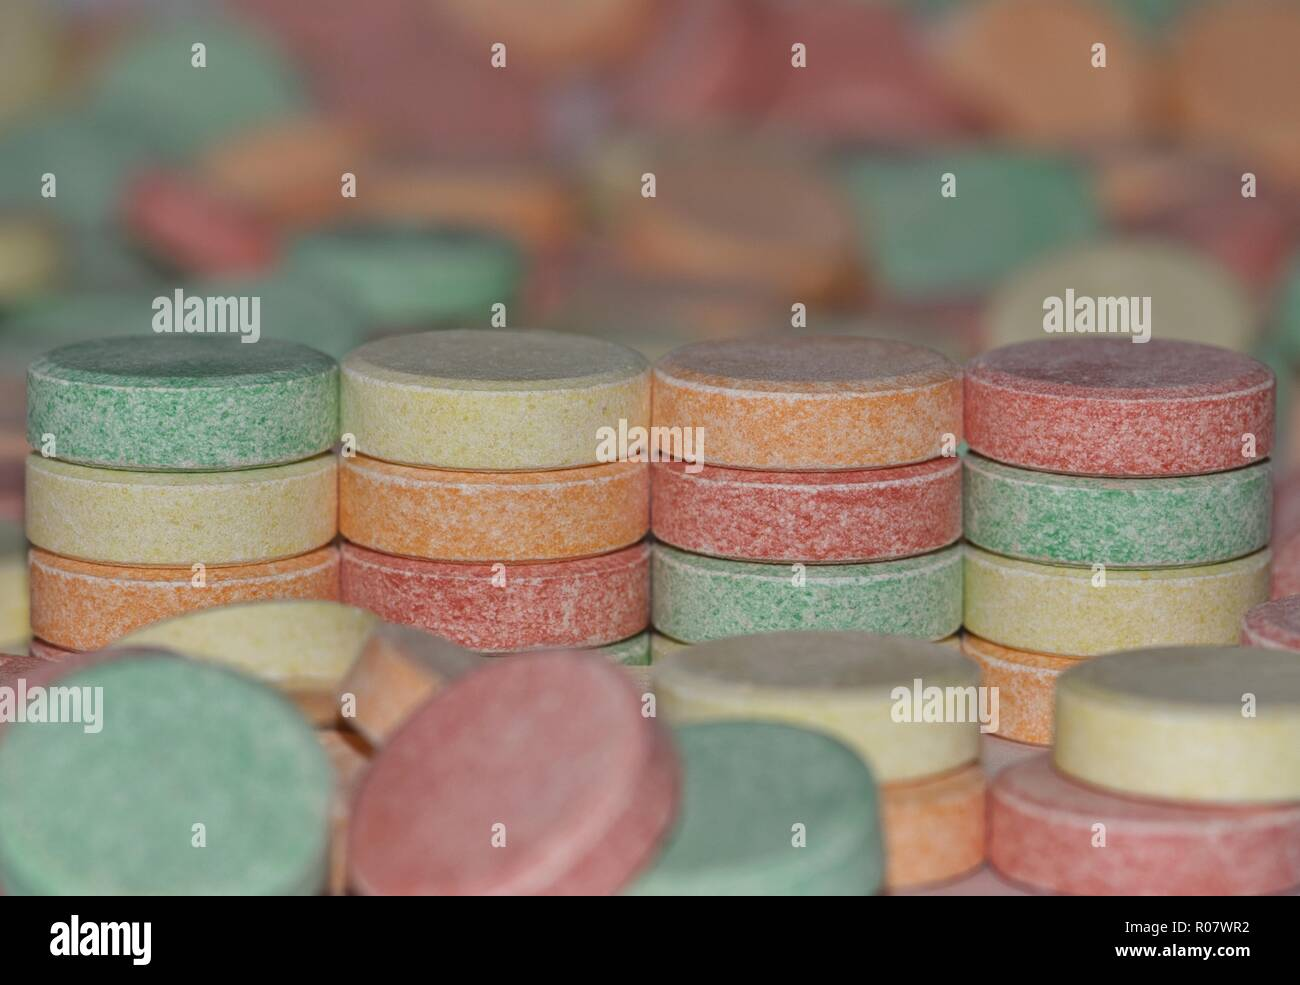 A colorful image showing four stacks of common antacid pills with many other scattered pills in the foreground and background. - Stock Image